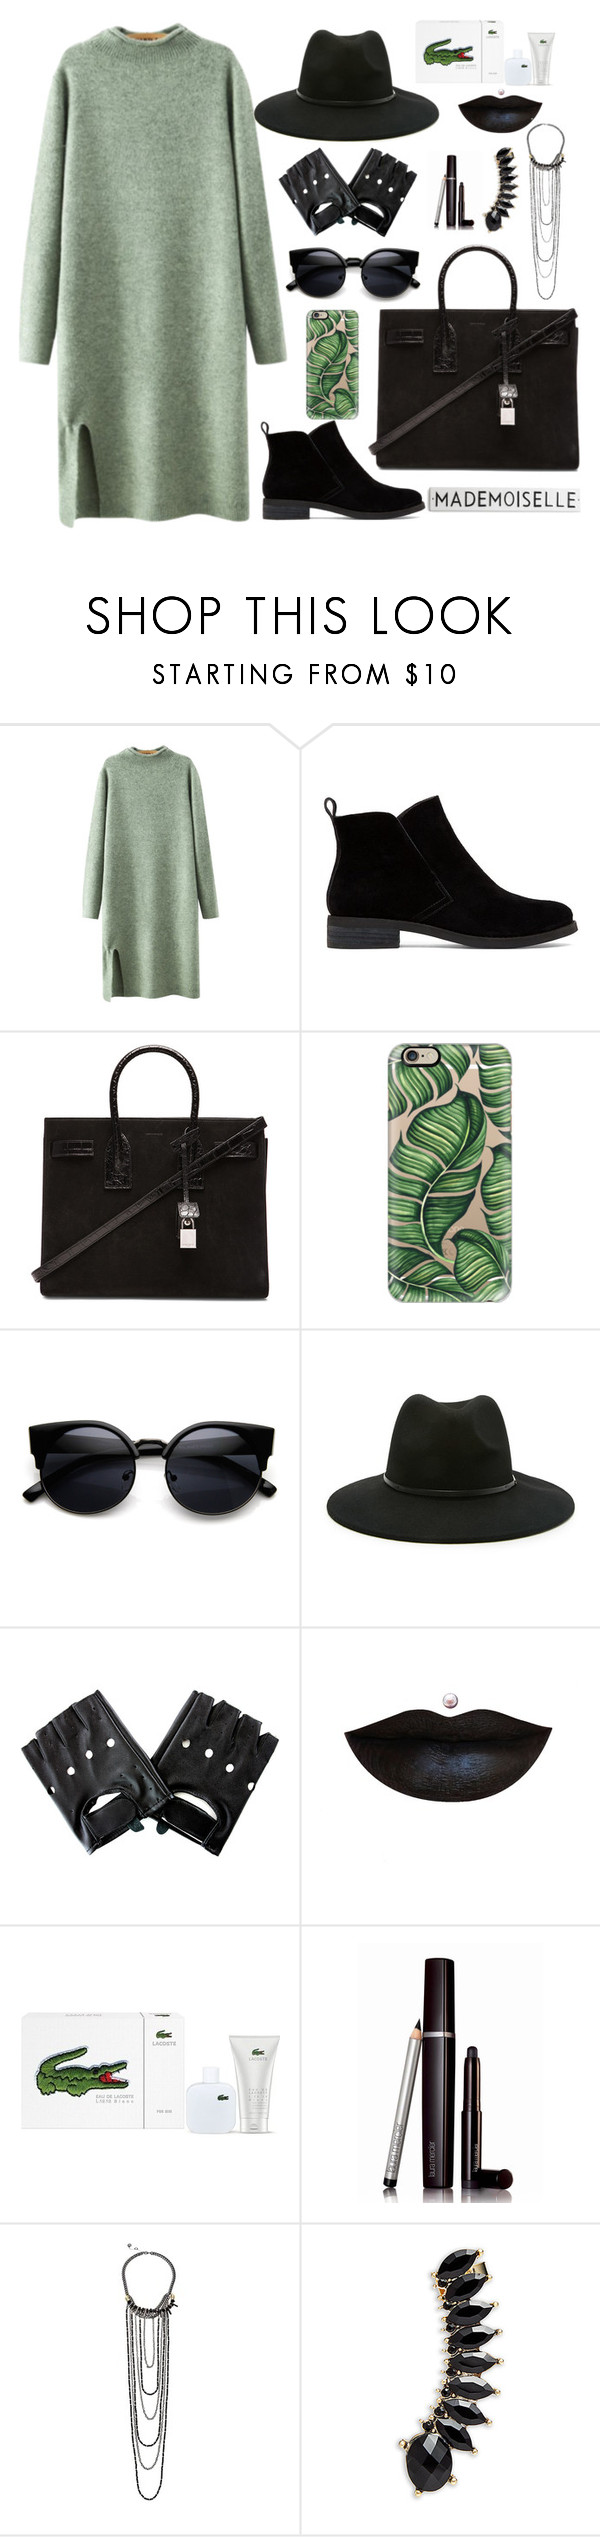 """""""Green-and-black"""" by microl ❤ liked on Polyvore featuring Chicnova Fashion, Lucky Brand, Yves Saint Laurent, Casetify, Forever 21, Lacoste, Laura Mercier, French Connection, Jules Smith and women's clothing"""